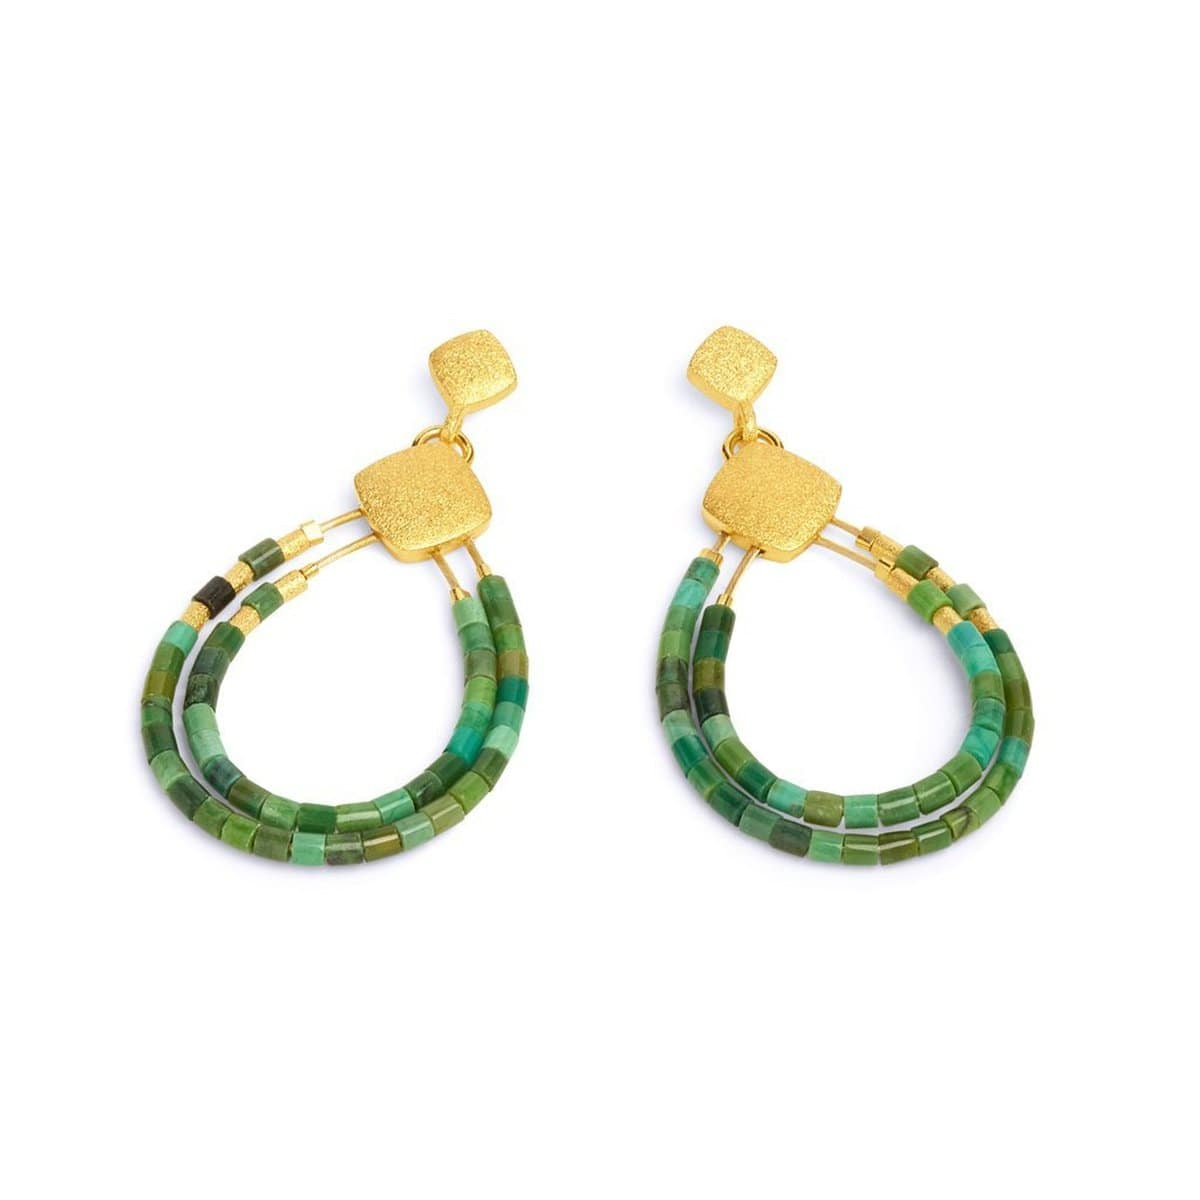 Clini Green Turquoise Earrings - 15576356-Bernd Wolf-Renee Taylor Gallery